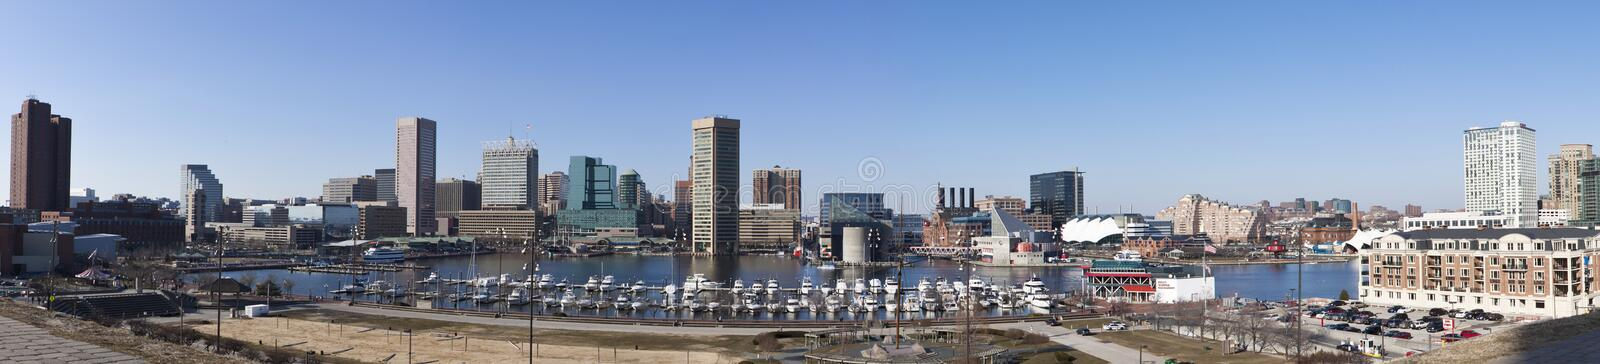 baltimore maryland royaltyfria bilder